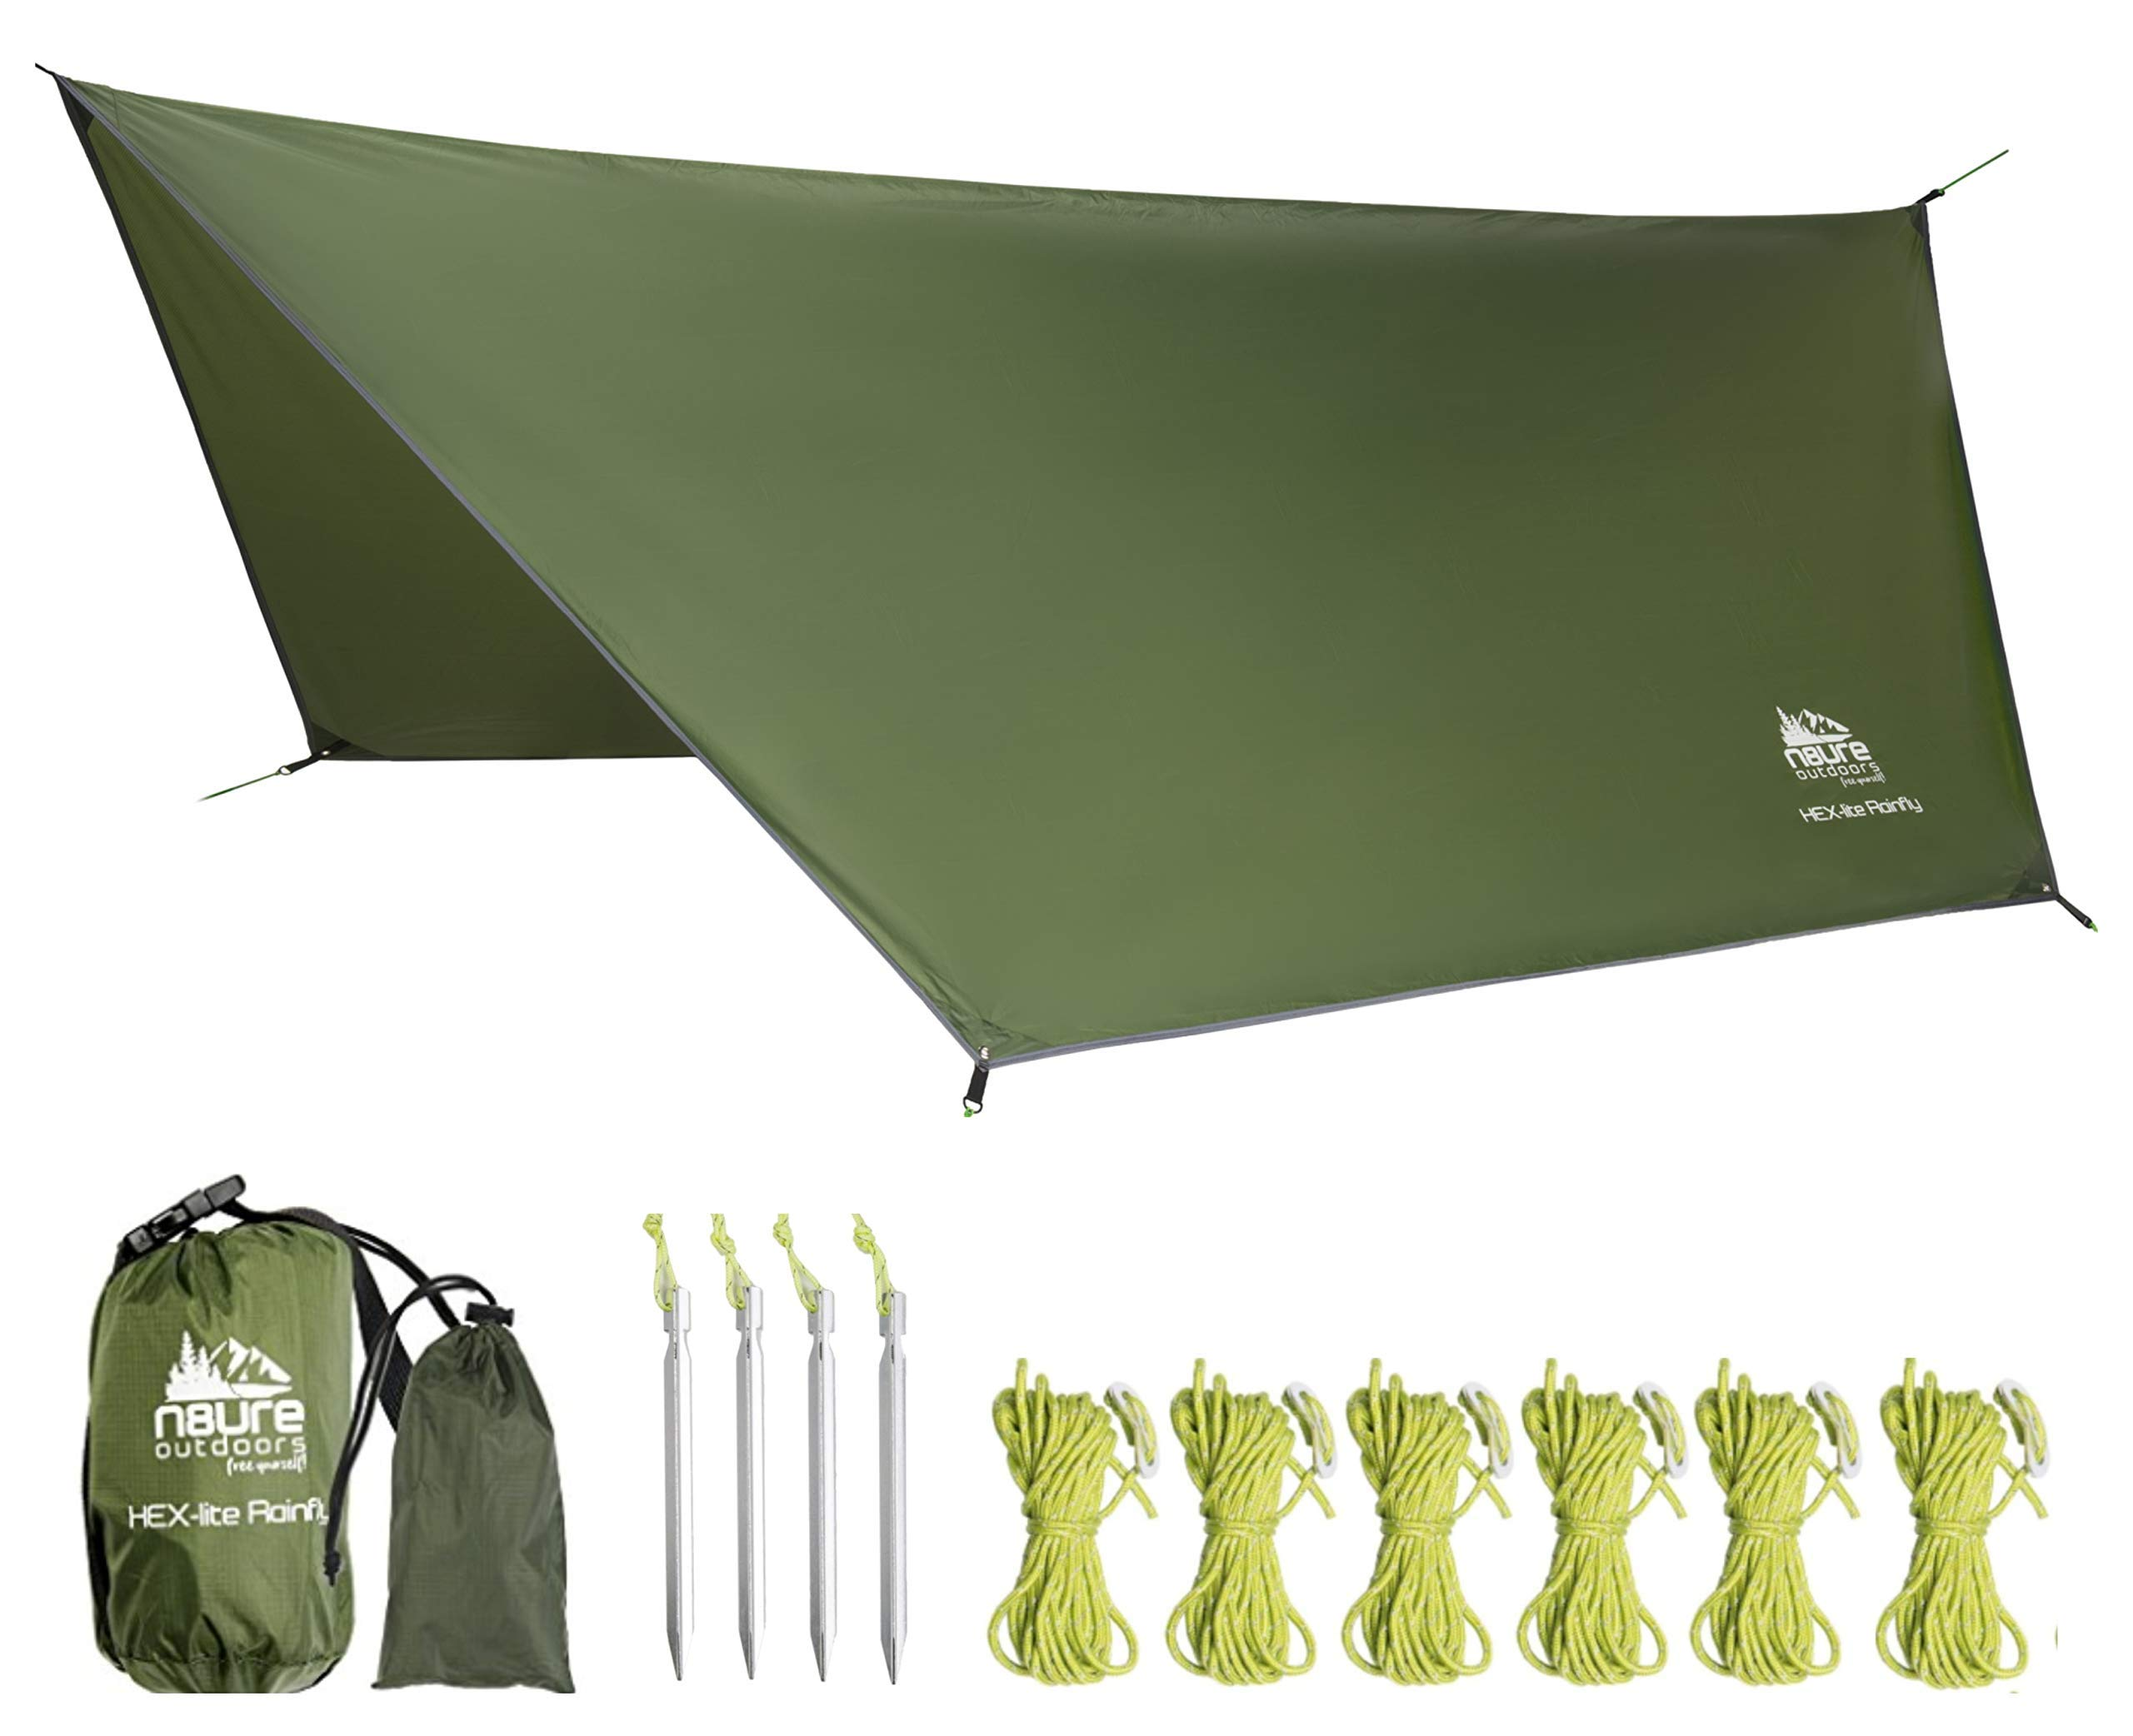 Camping Rain Fly Tarp 12'x10' Hex Ultra Light Ripstop Nylon Water Proof Outdoor Tent Shelter Backpacking Hiking Travel Bushcraft Survival Gear Includes Stakes Ropes Stuff Sack by N8URE Outdoors